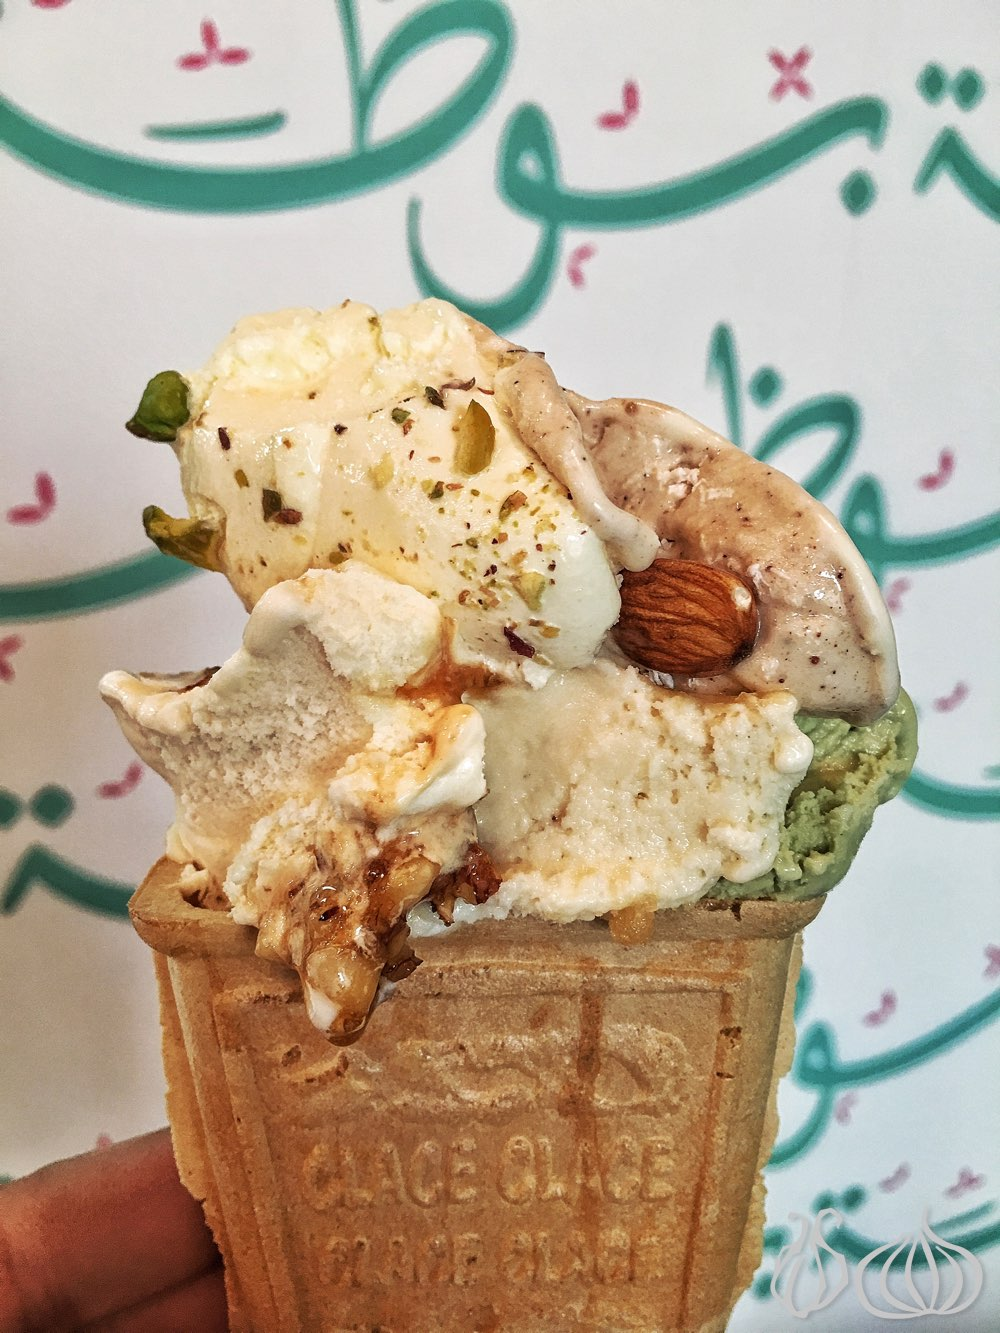 booza-ice-cream-dubai122015-12-28-11-48-26